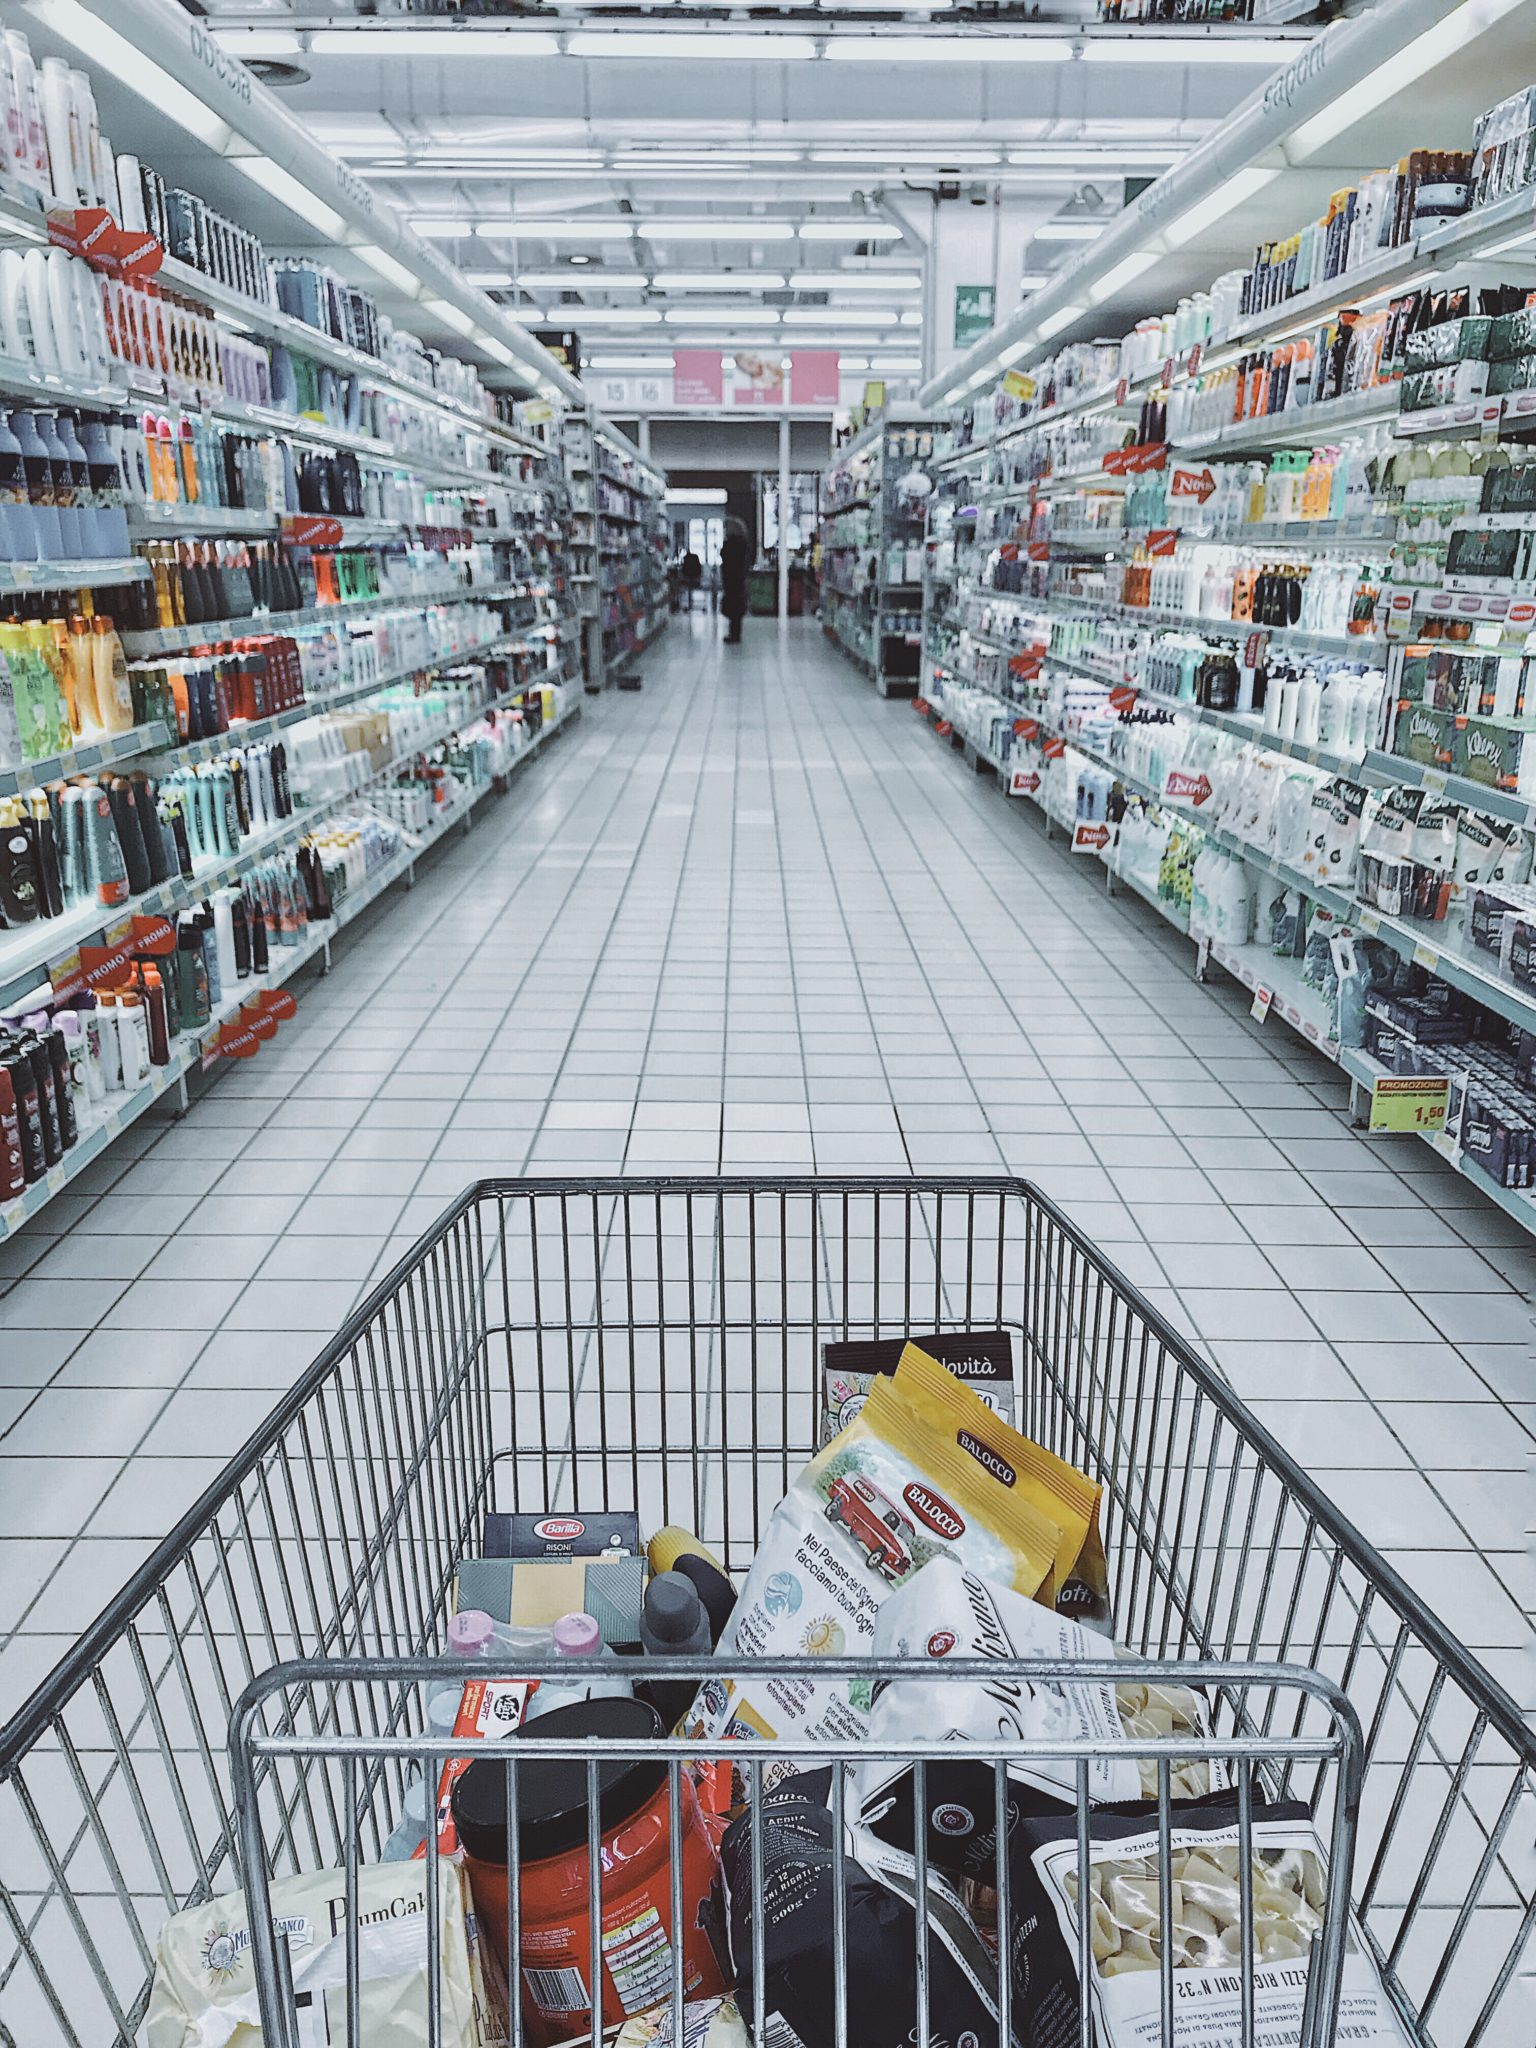 aisle-cart-commerce-1005638